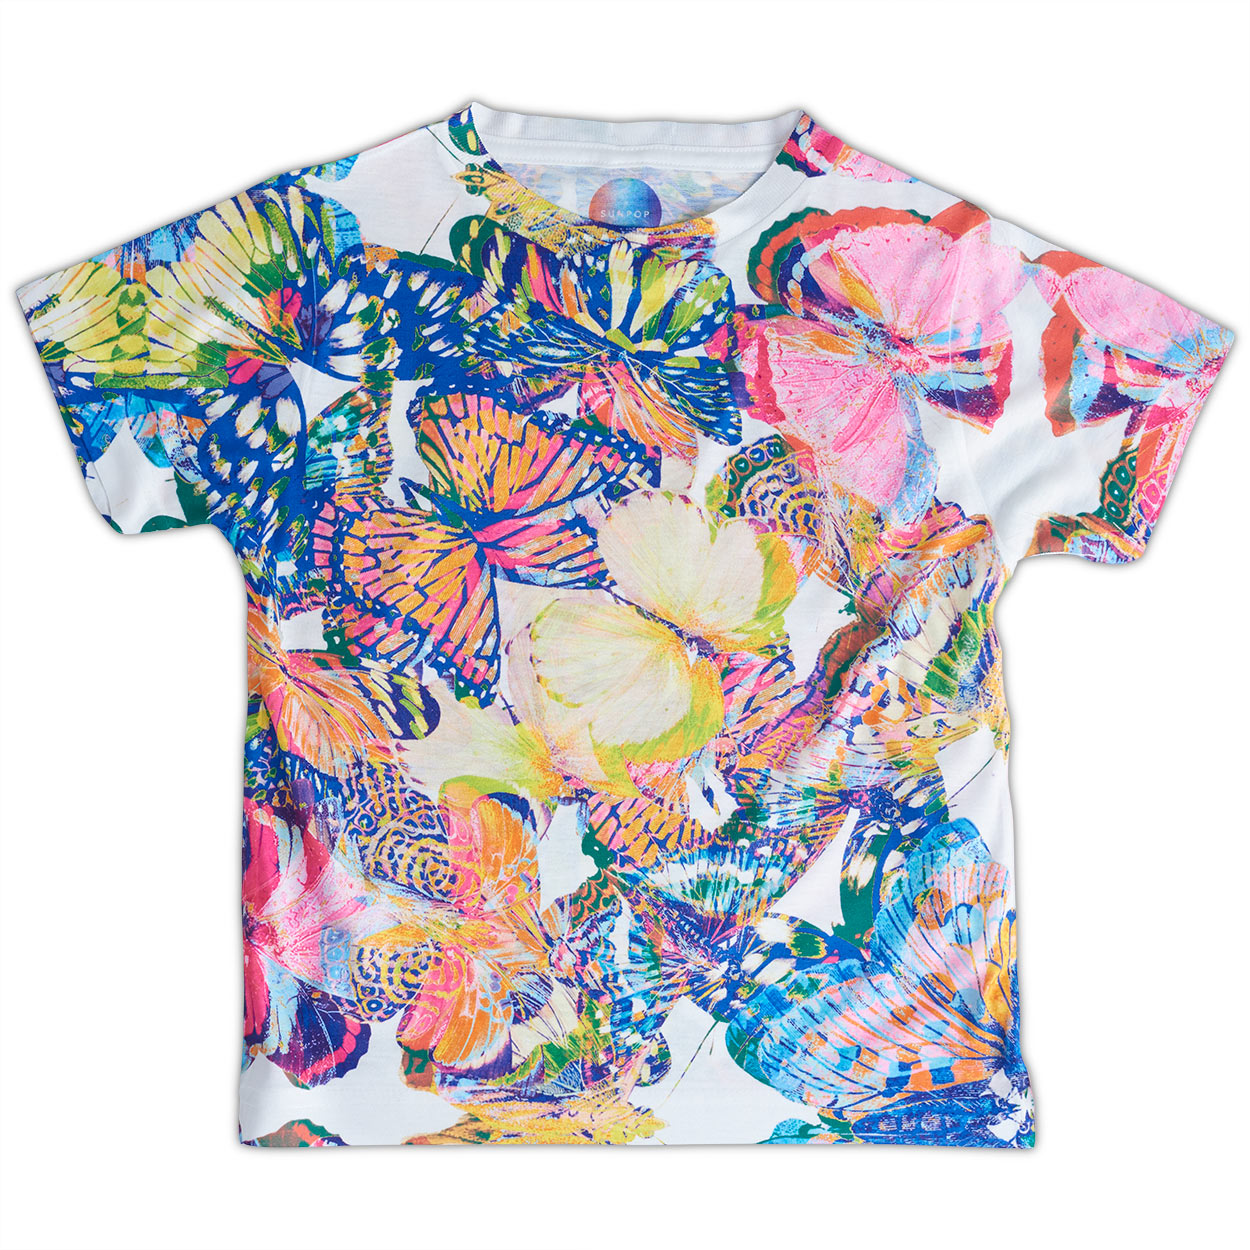 Girls Kaleidoscope Graphic Shirt Size Xs L Yellow Orange Blue Butterflies Opaline World Sunpoplife